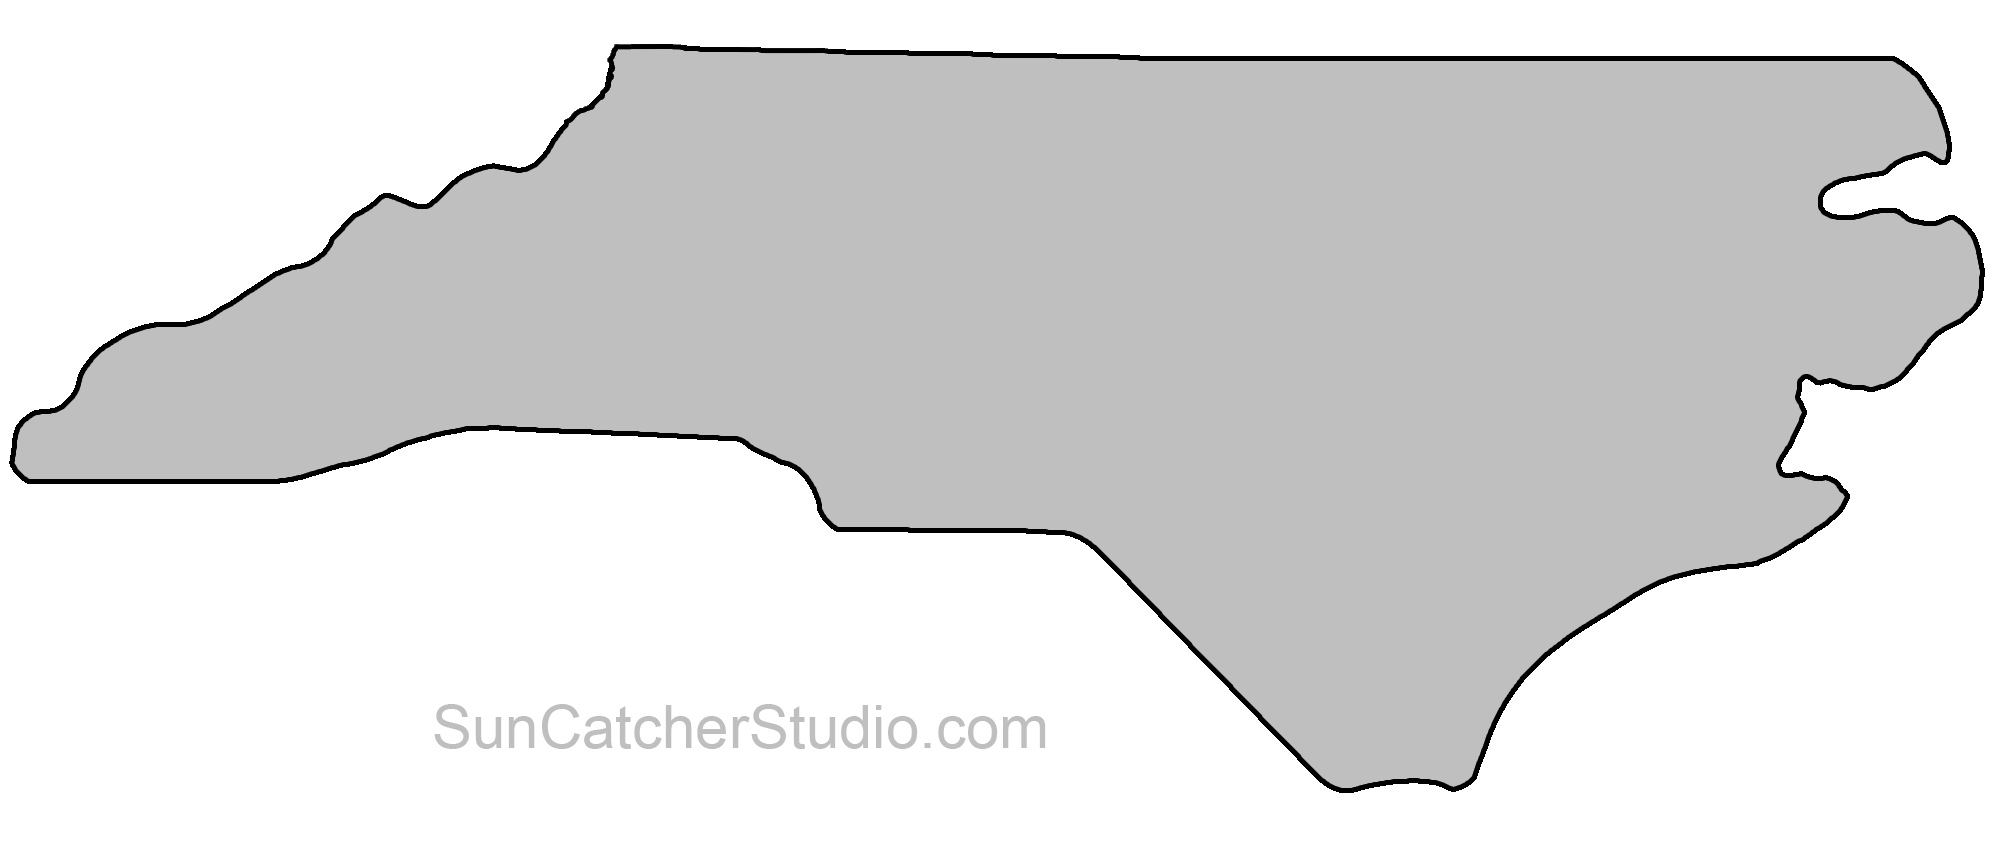 Indiana clipart shape. State outlines maps stencils